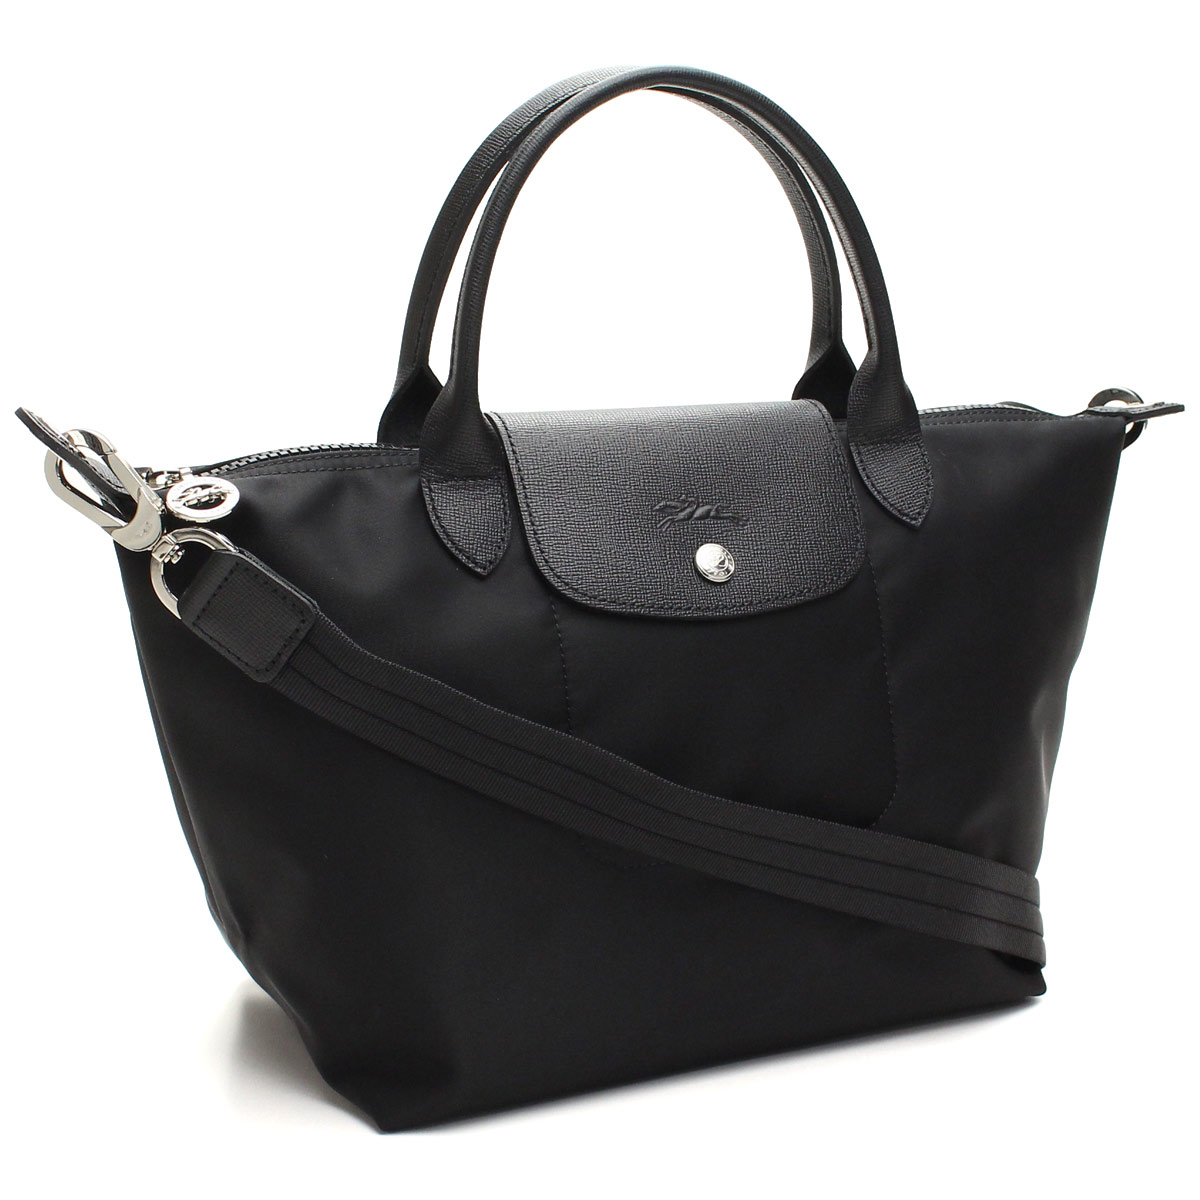 Longchamp Product List Click Here